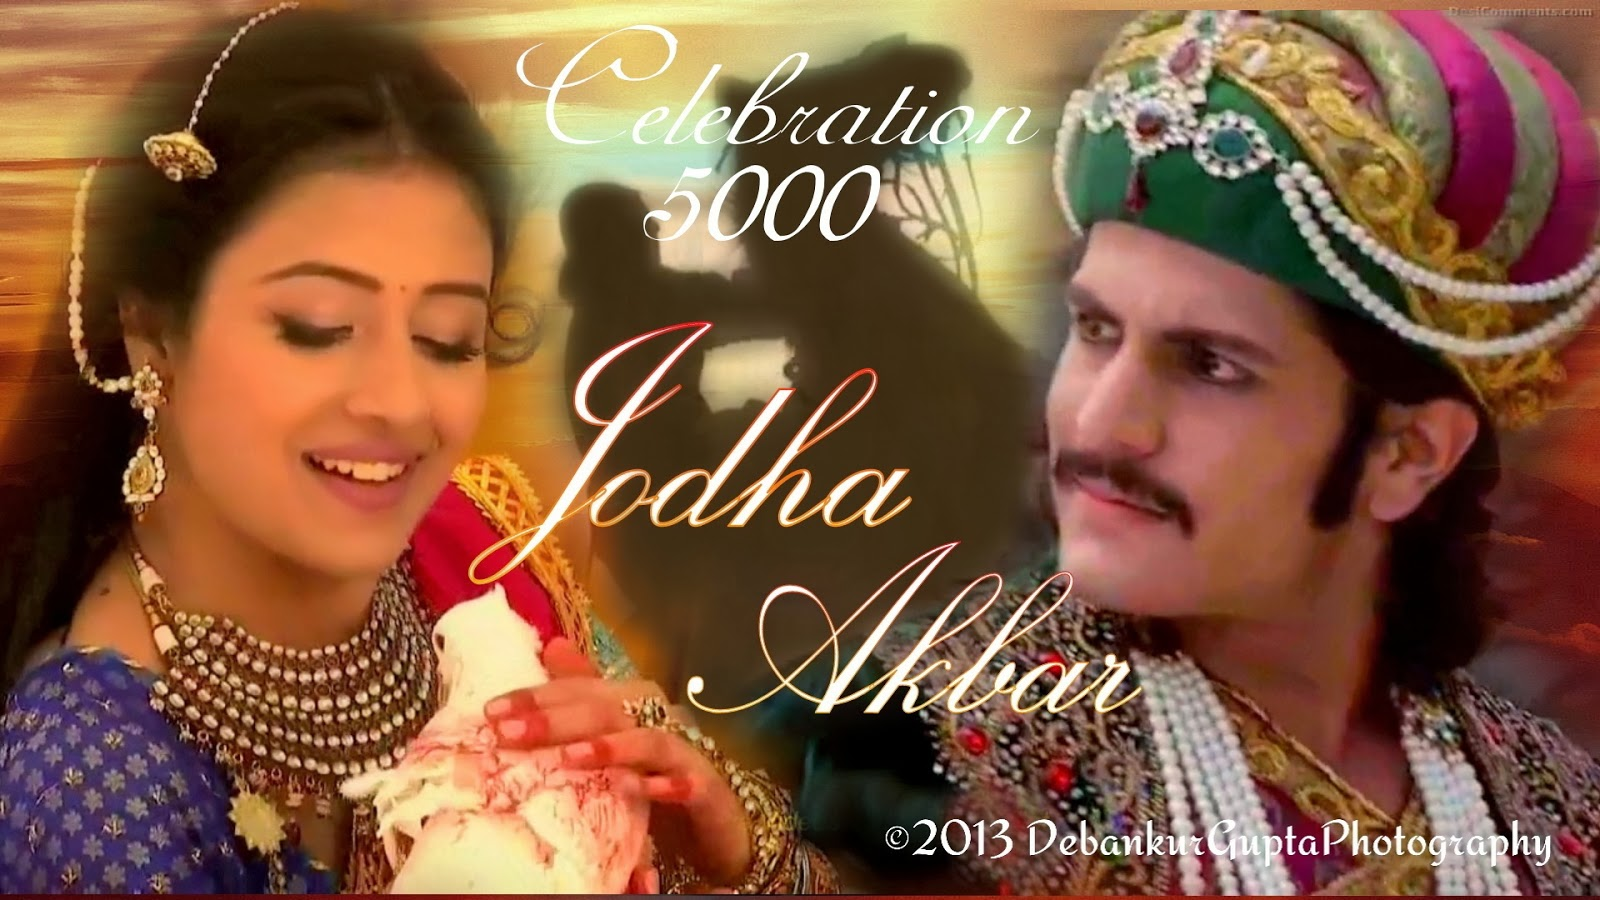 Zee tv drama jodha akbar 6 november 2013 : Deadbeat tv trailer